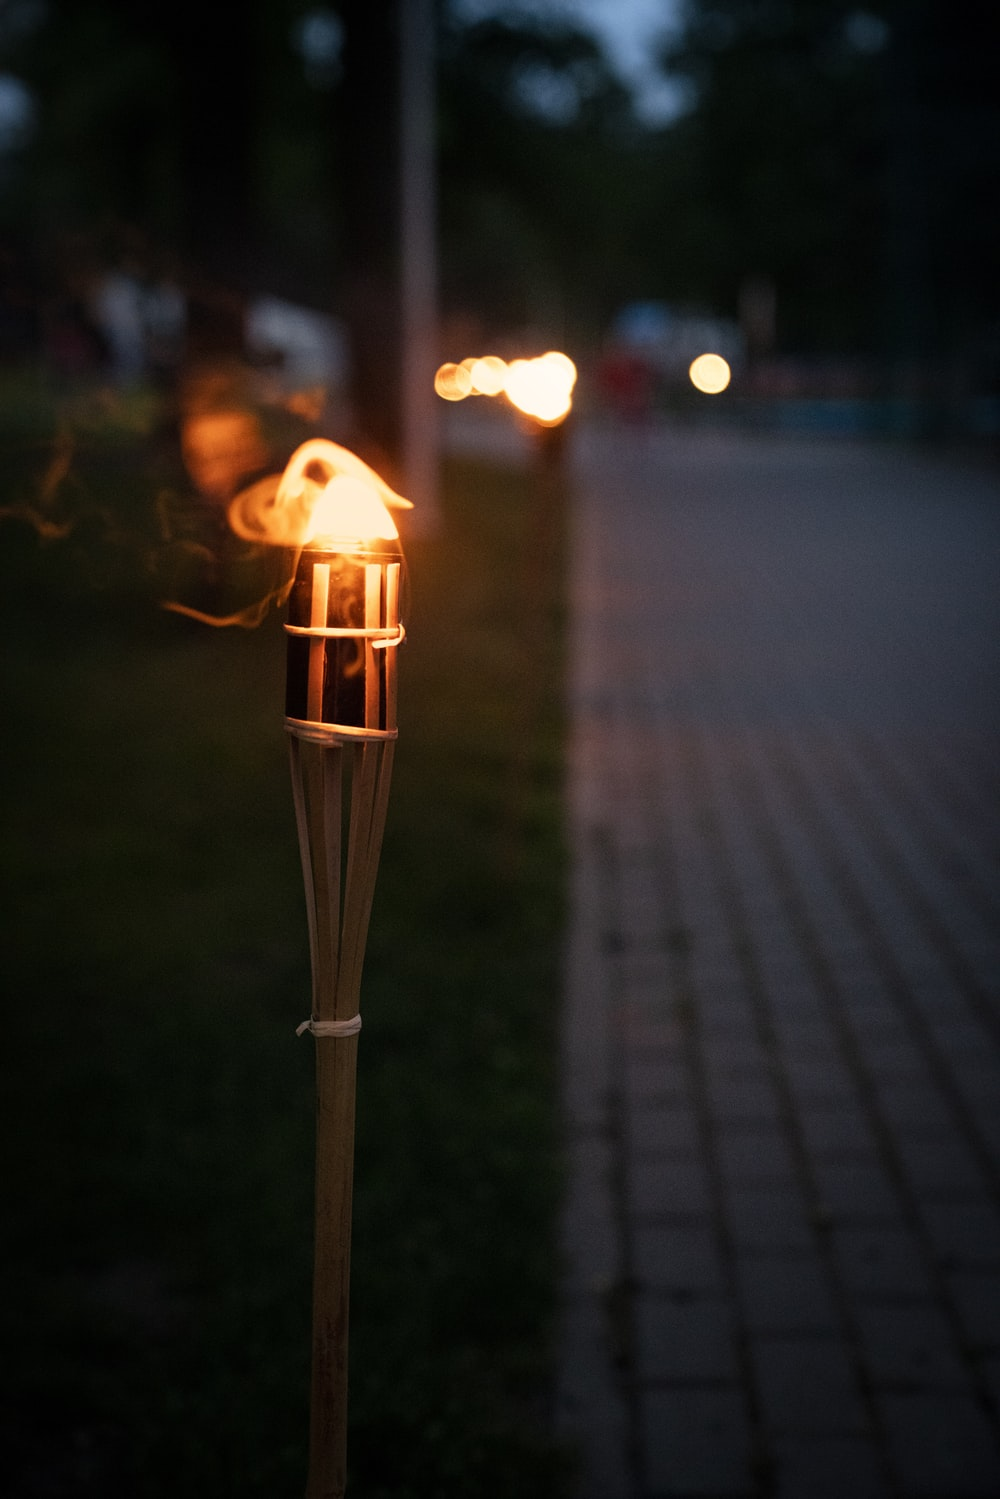 Torch Light Pictures   Download Free Images on Unsplash